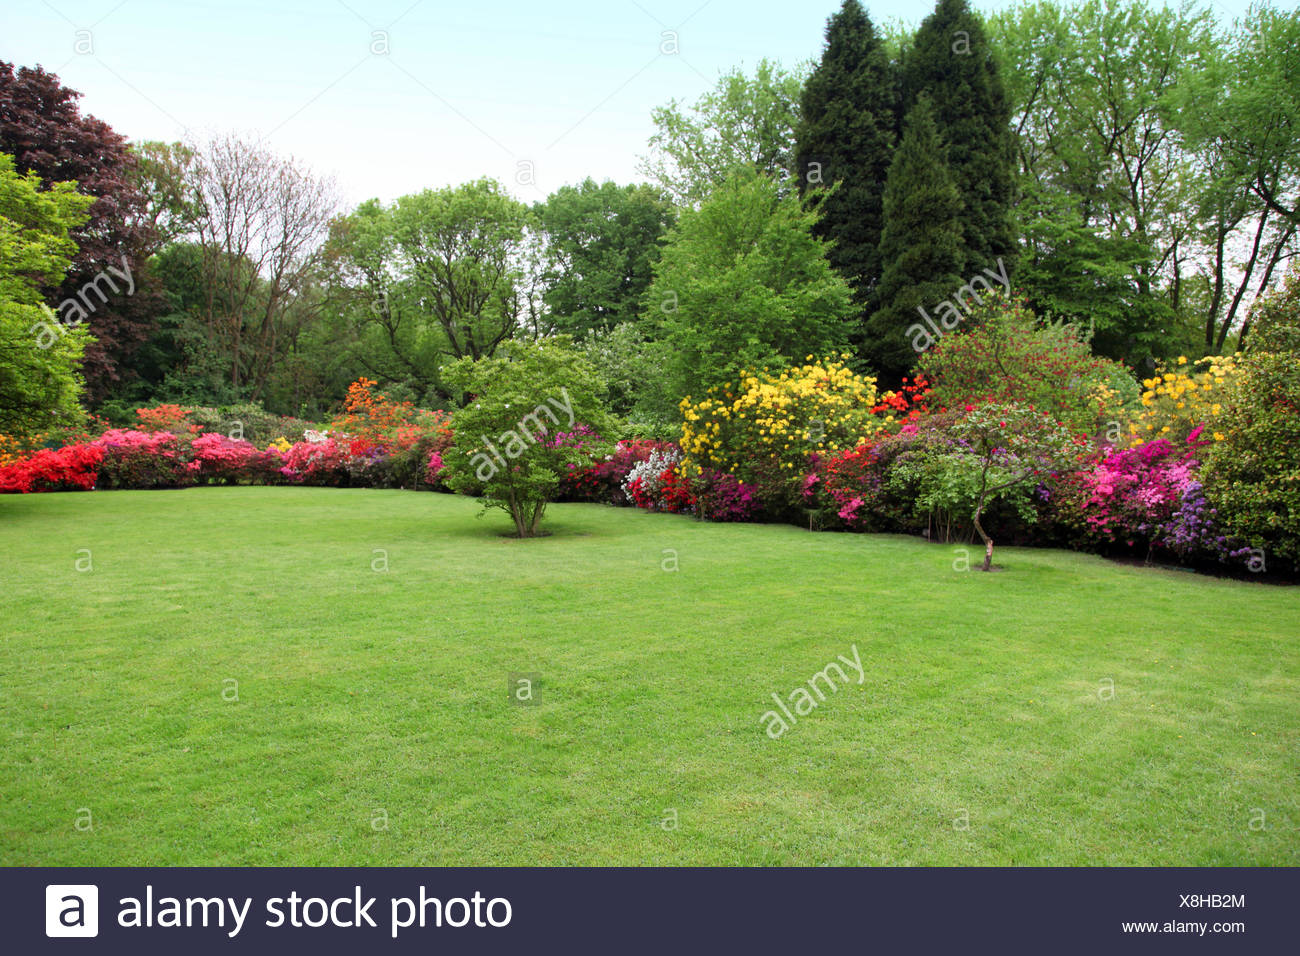 Beautiful manicured lawn in a summer garden - Stock Image